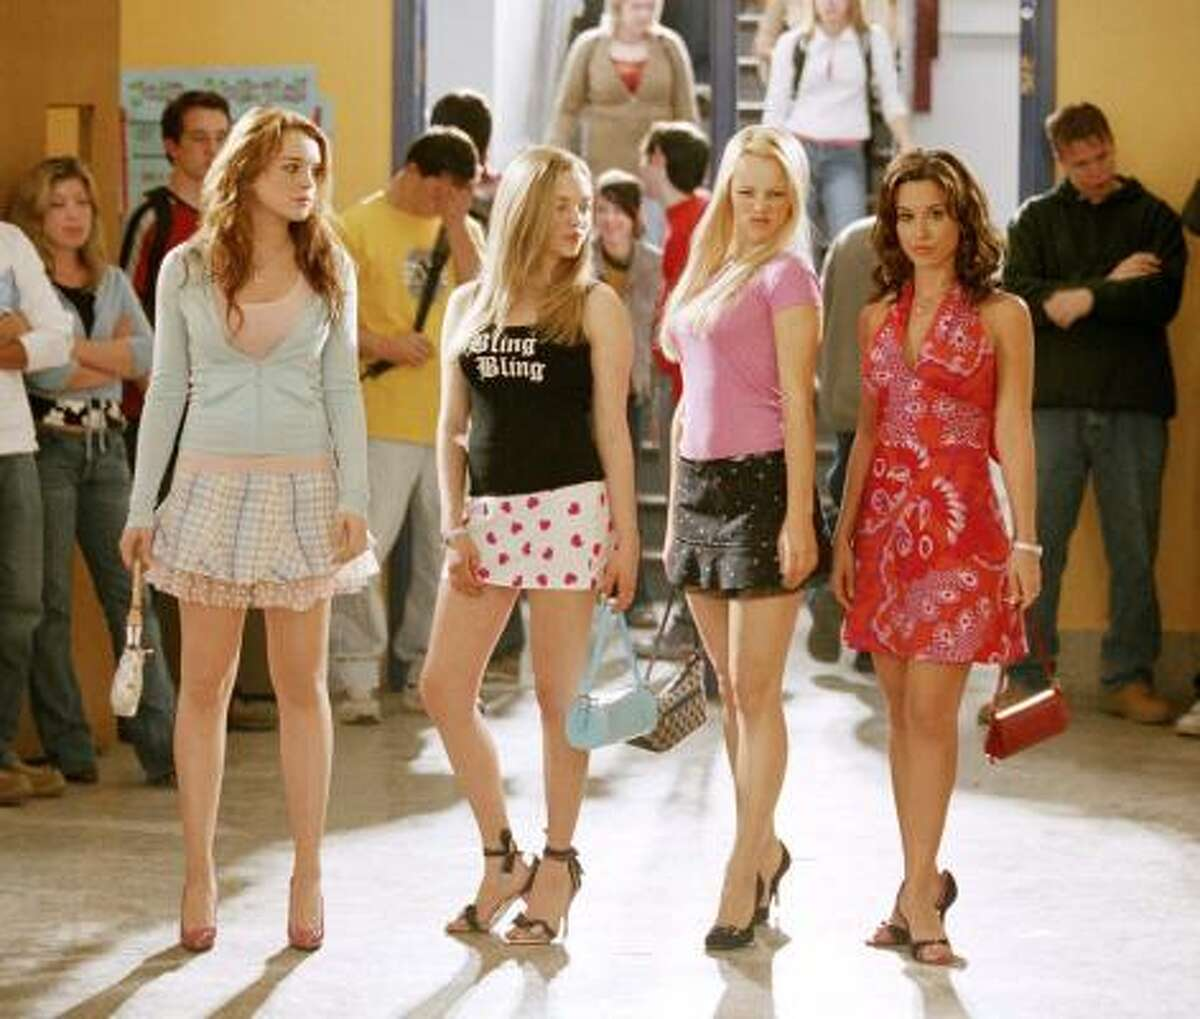 Bully: The Plastics, led by mean queen Regina George (second from right) made Cady Heron turn into something she wasn't in Mean Girls.